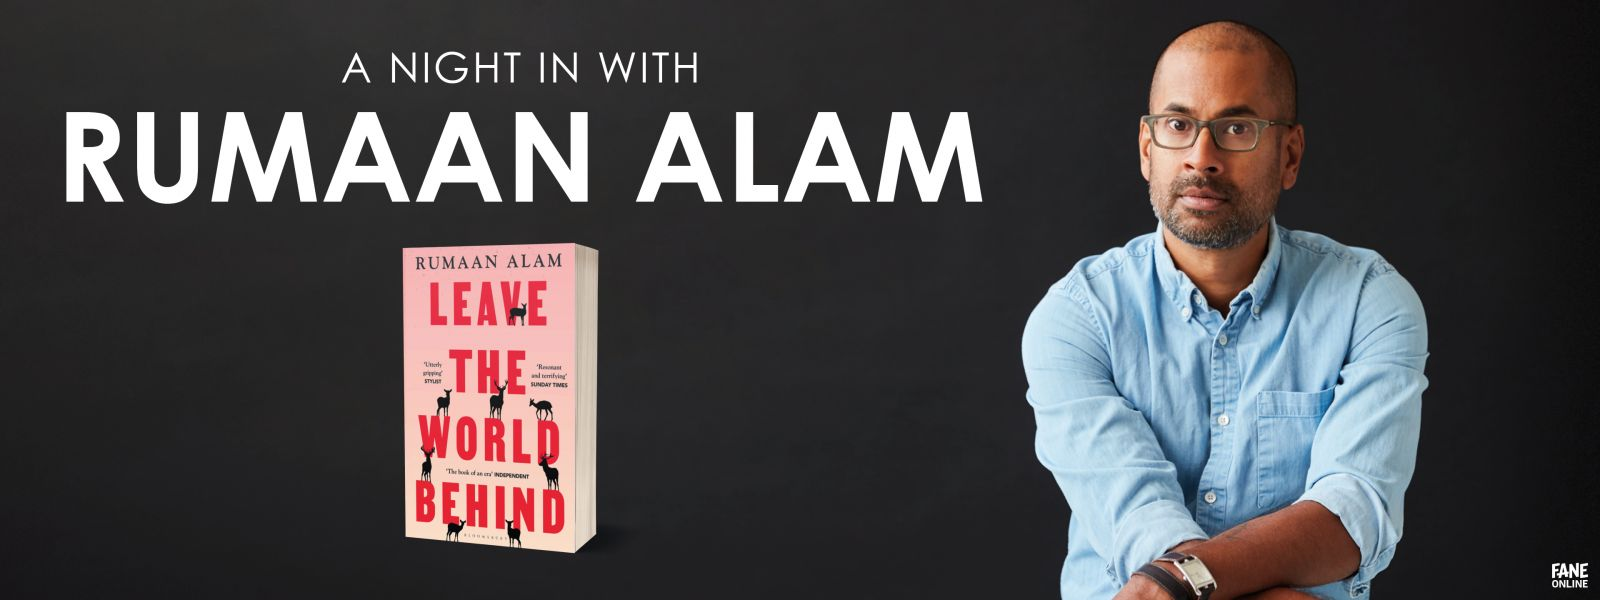 A Night In with Rumaan Alam